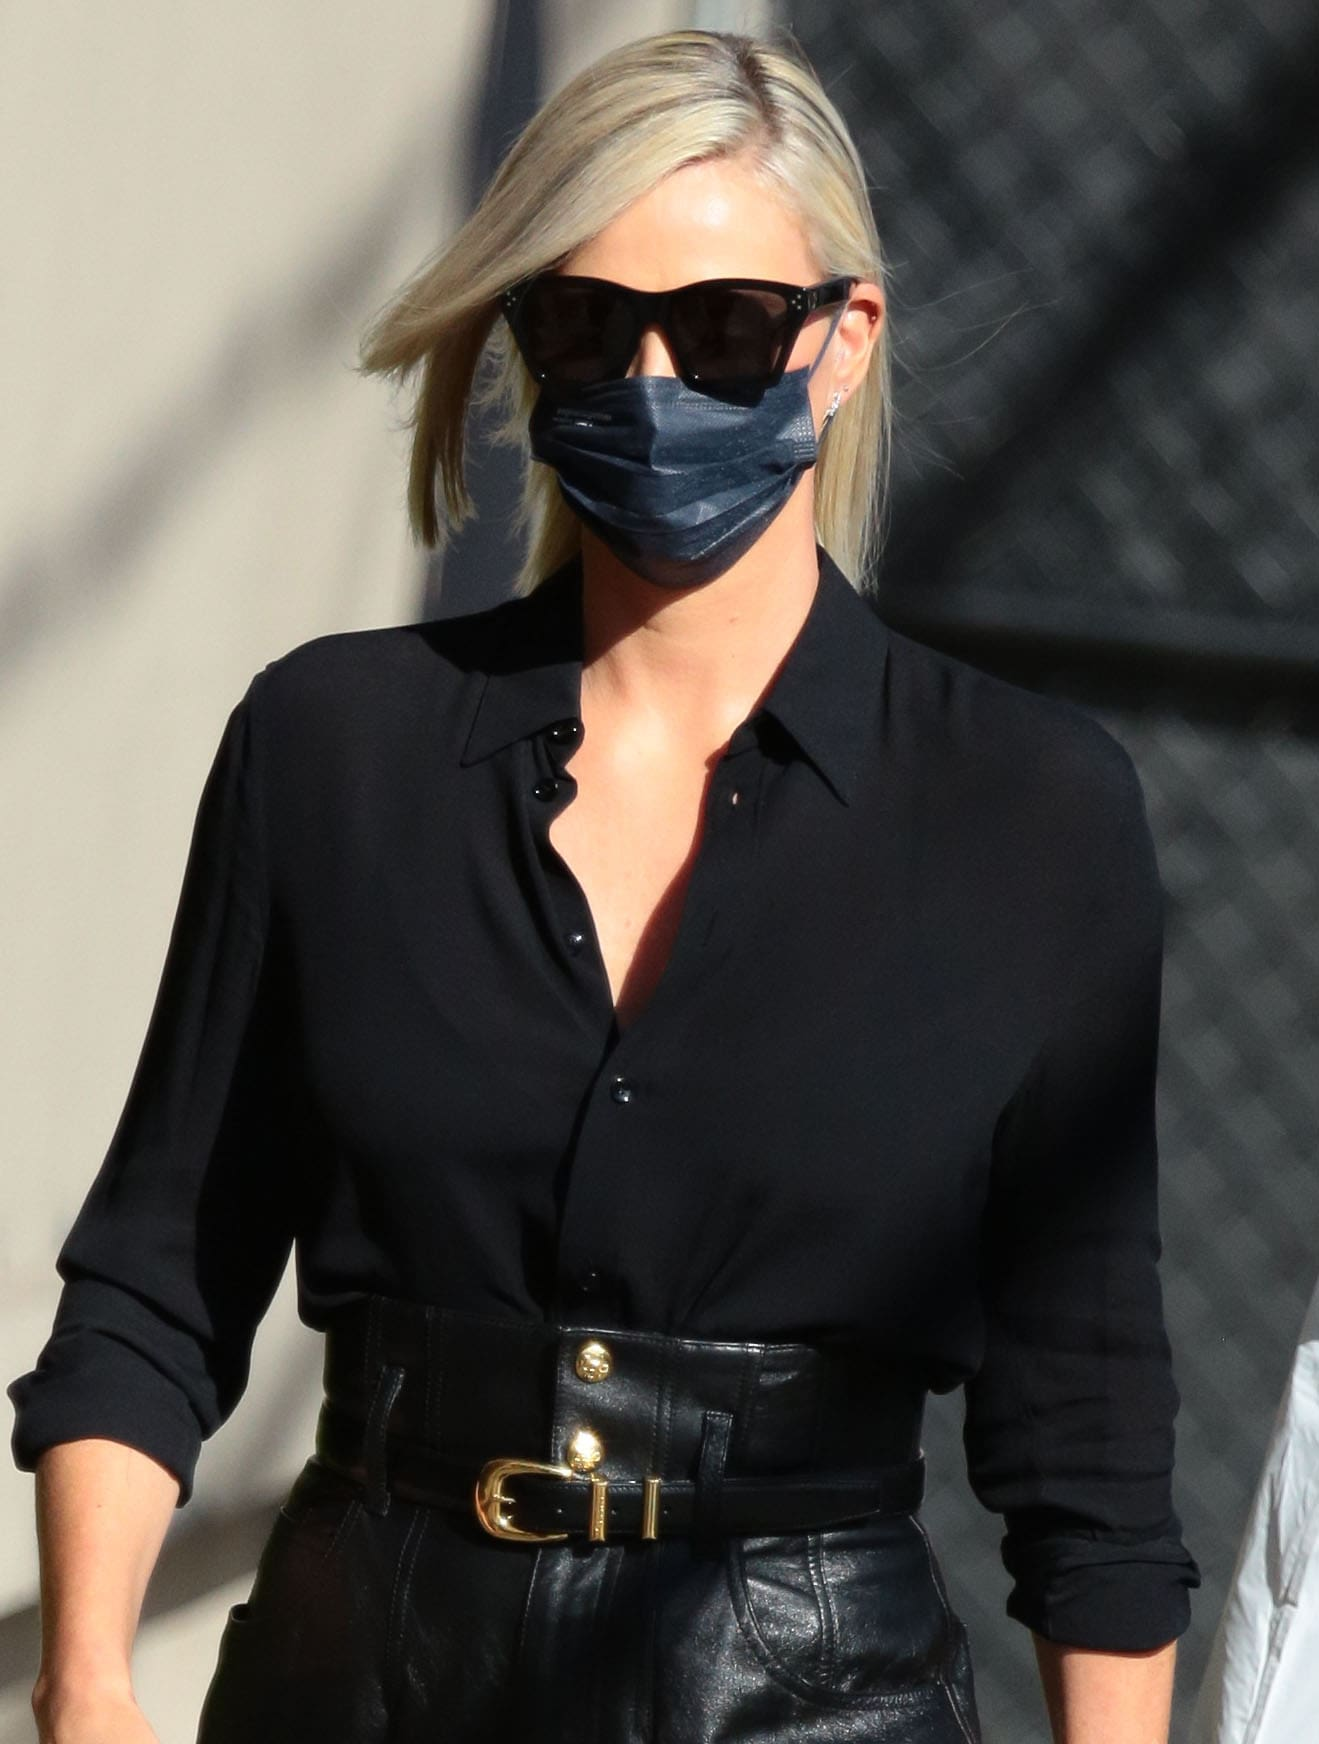 Charlize Theron hides her face behind oversized sunglasses and a black face mask